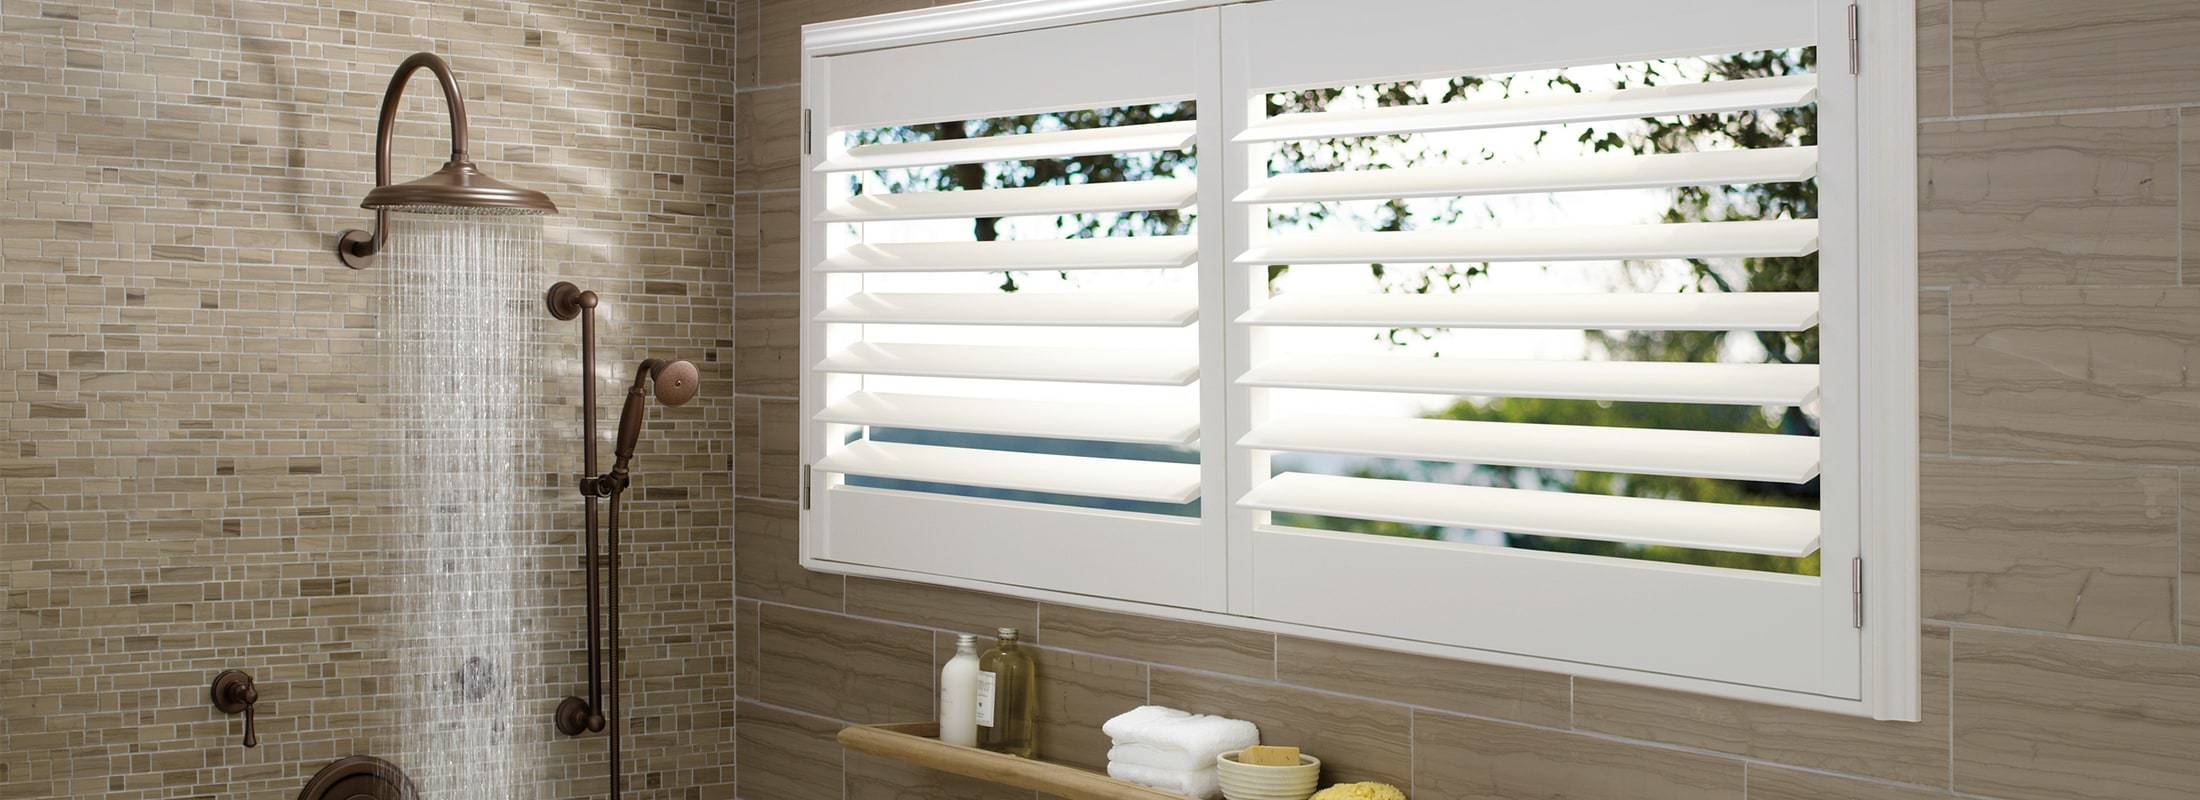 Renowned Renovation | Blinds, Shades, Shutters | Dallas, TX